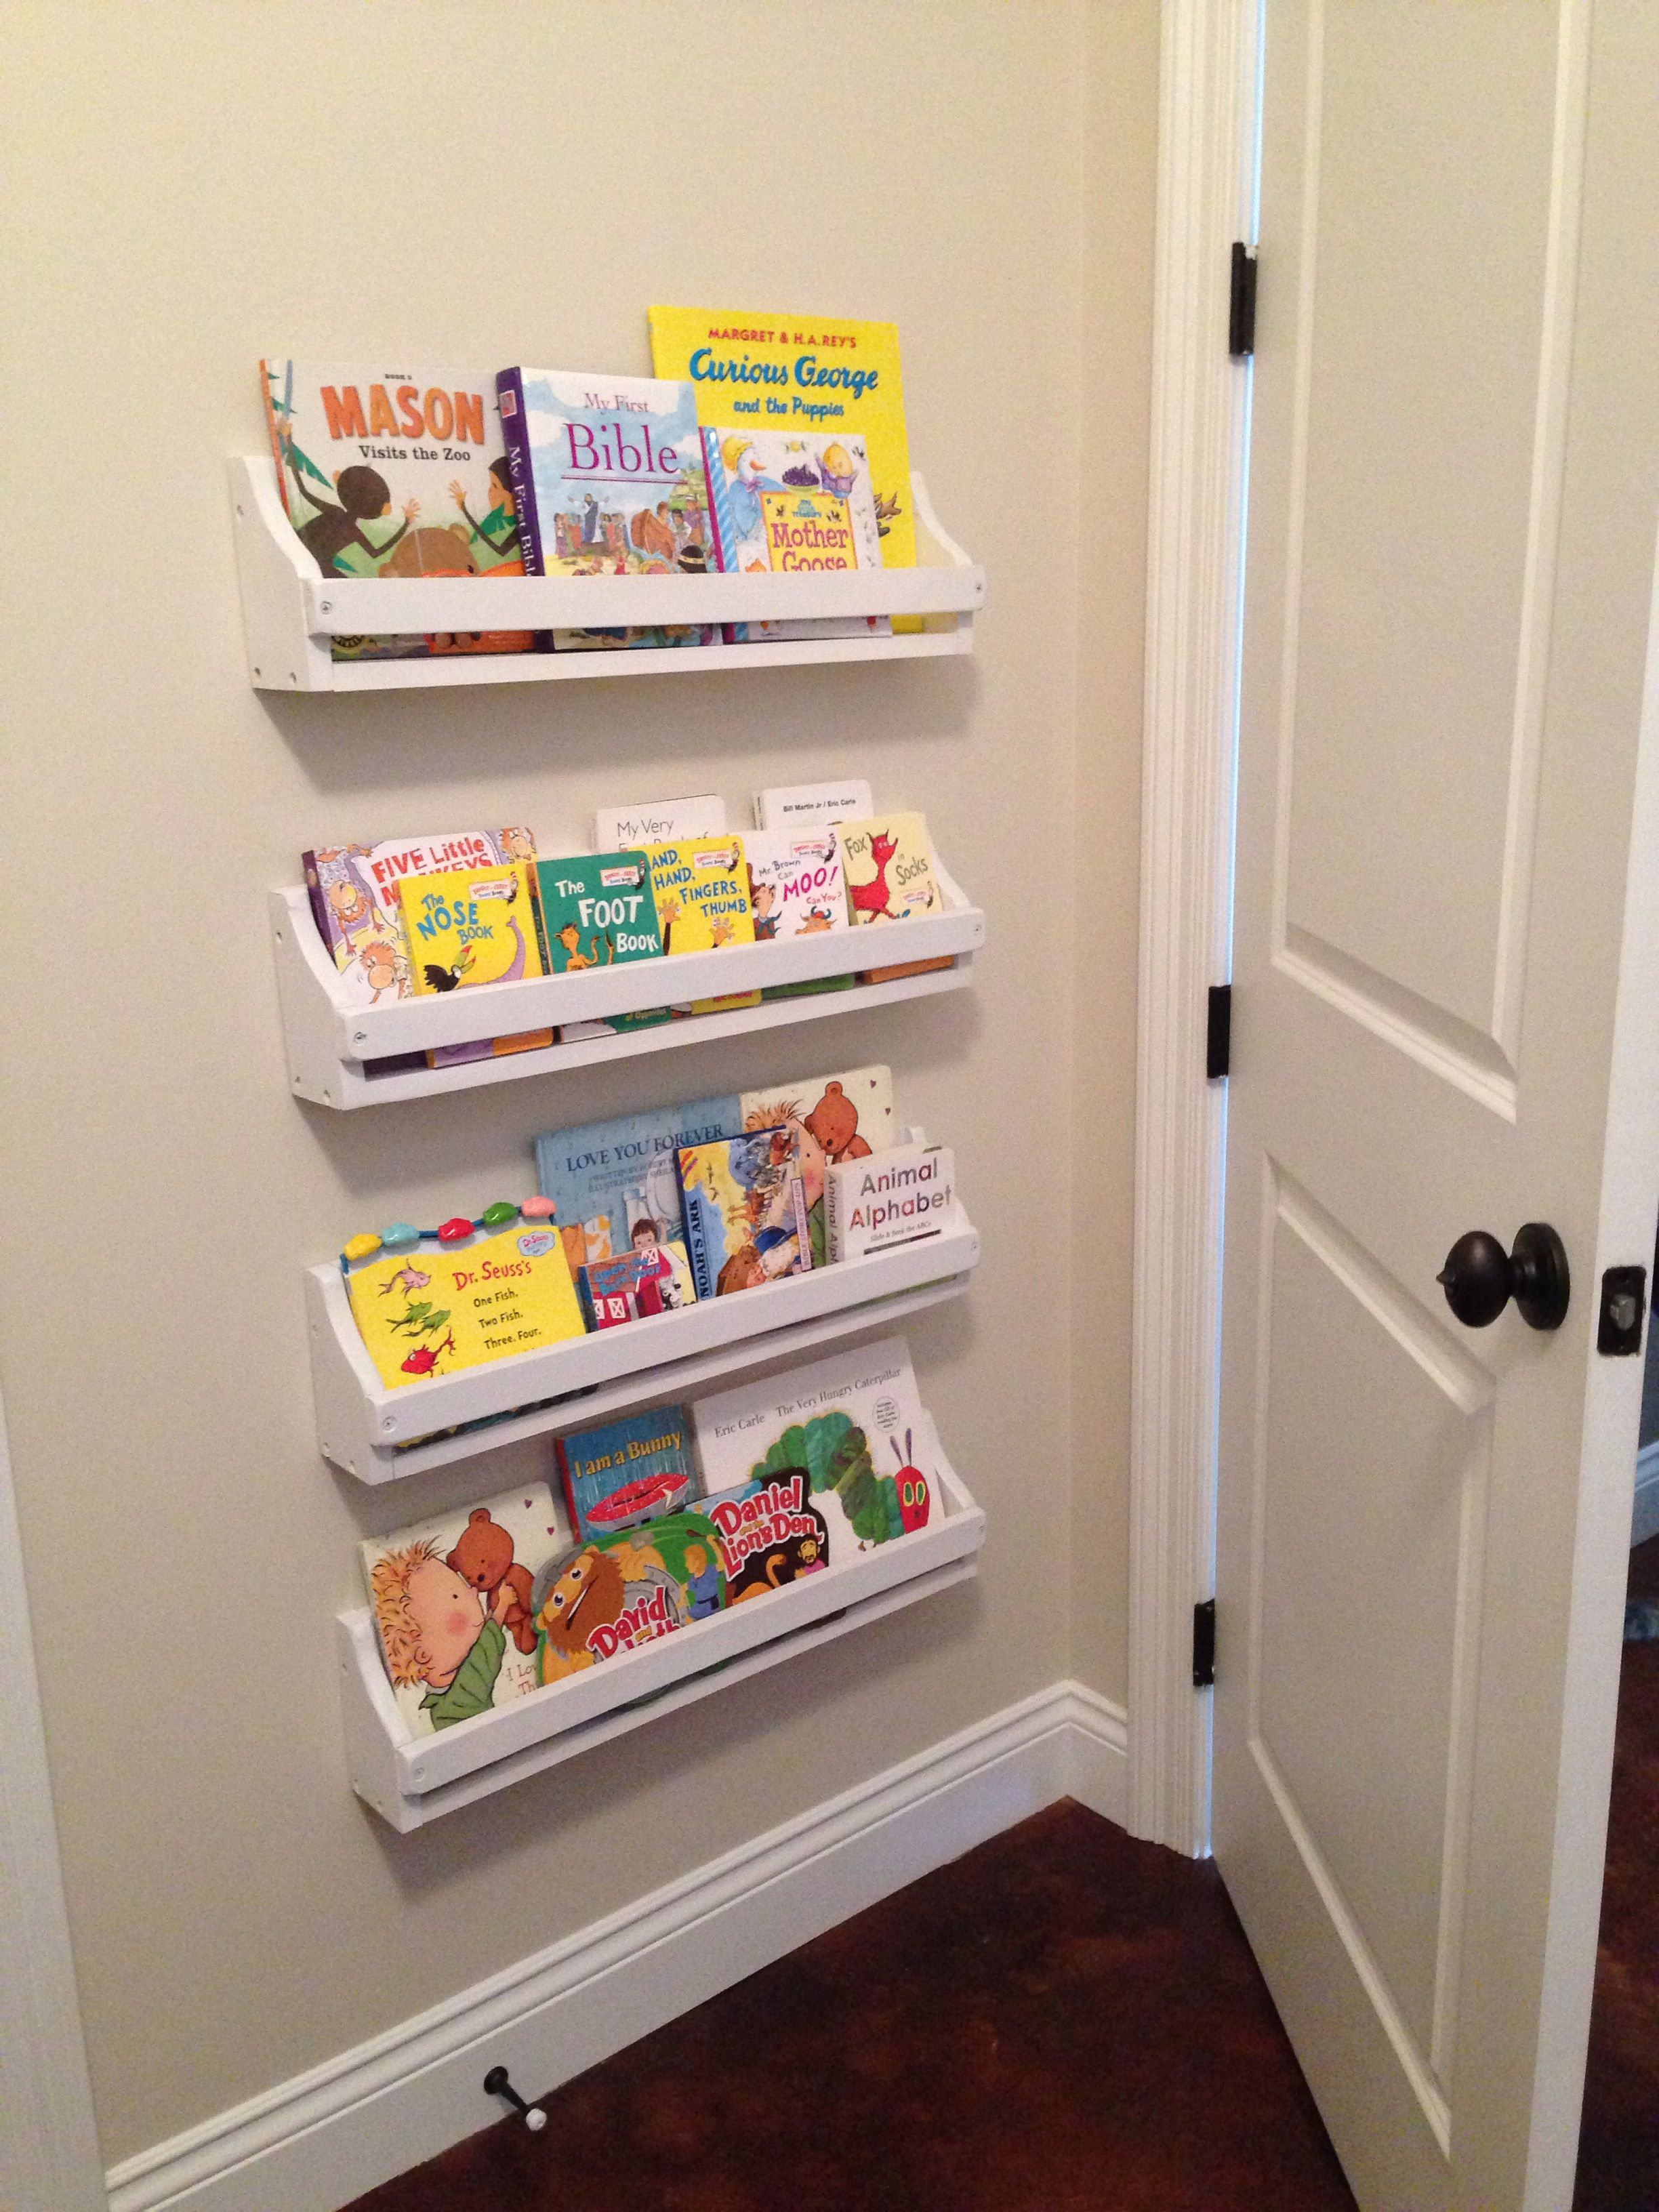 Pinterest Inspired Diy Behind The Door Wall Mounted Bookshelves